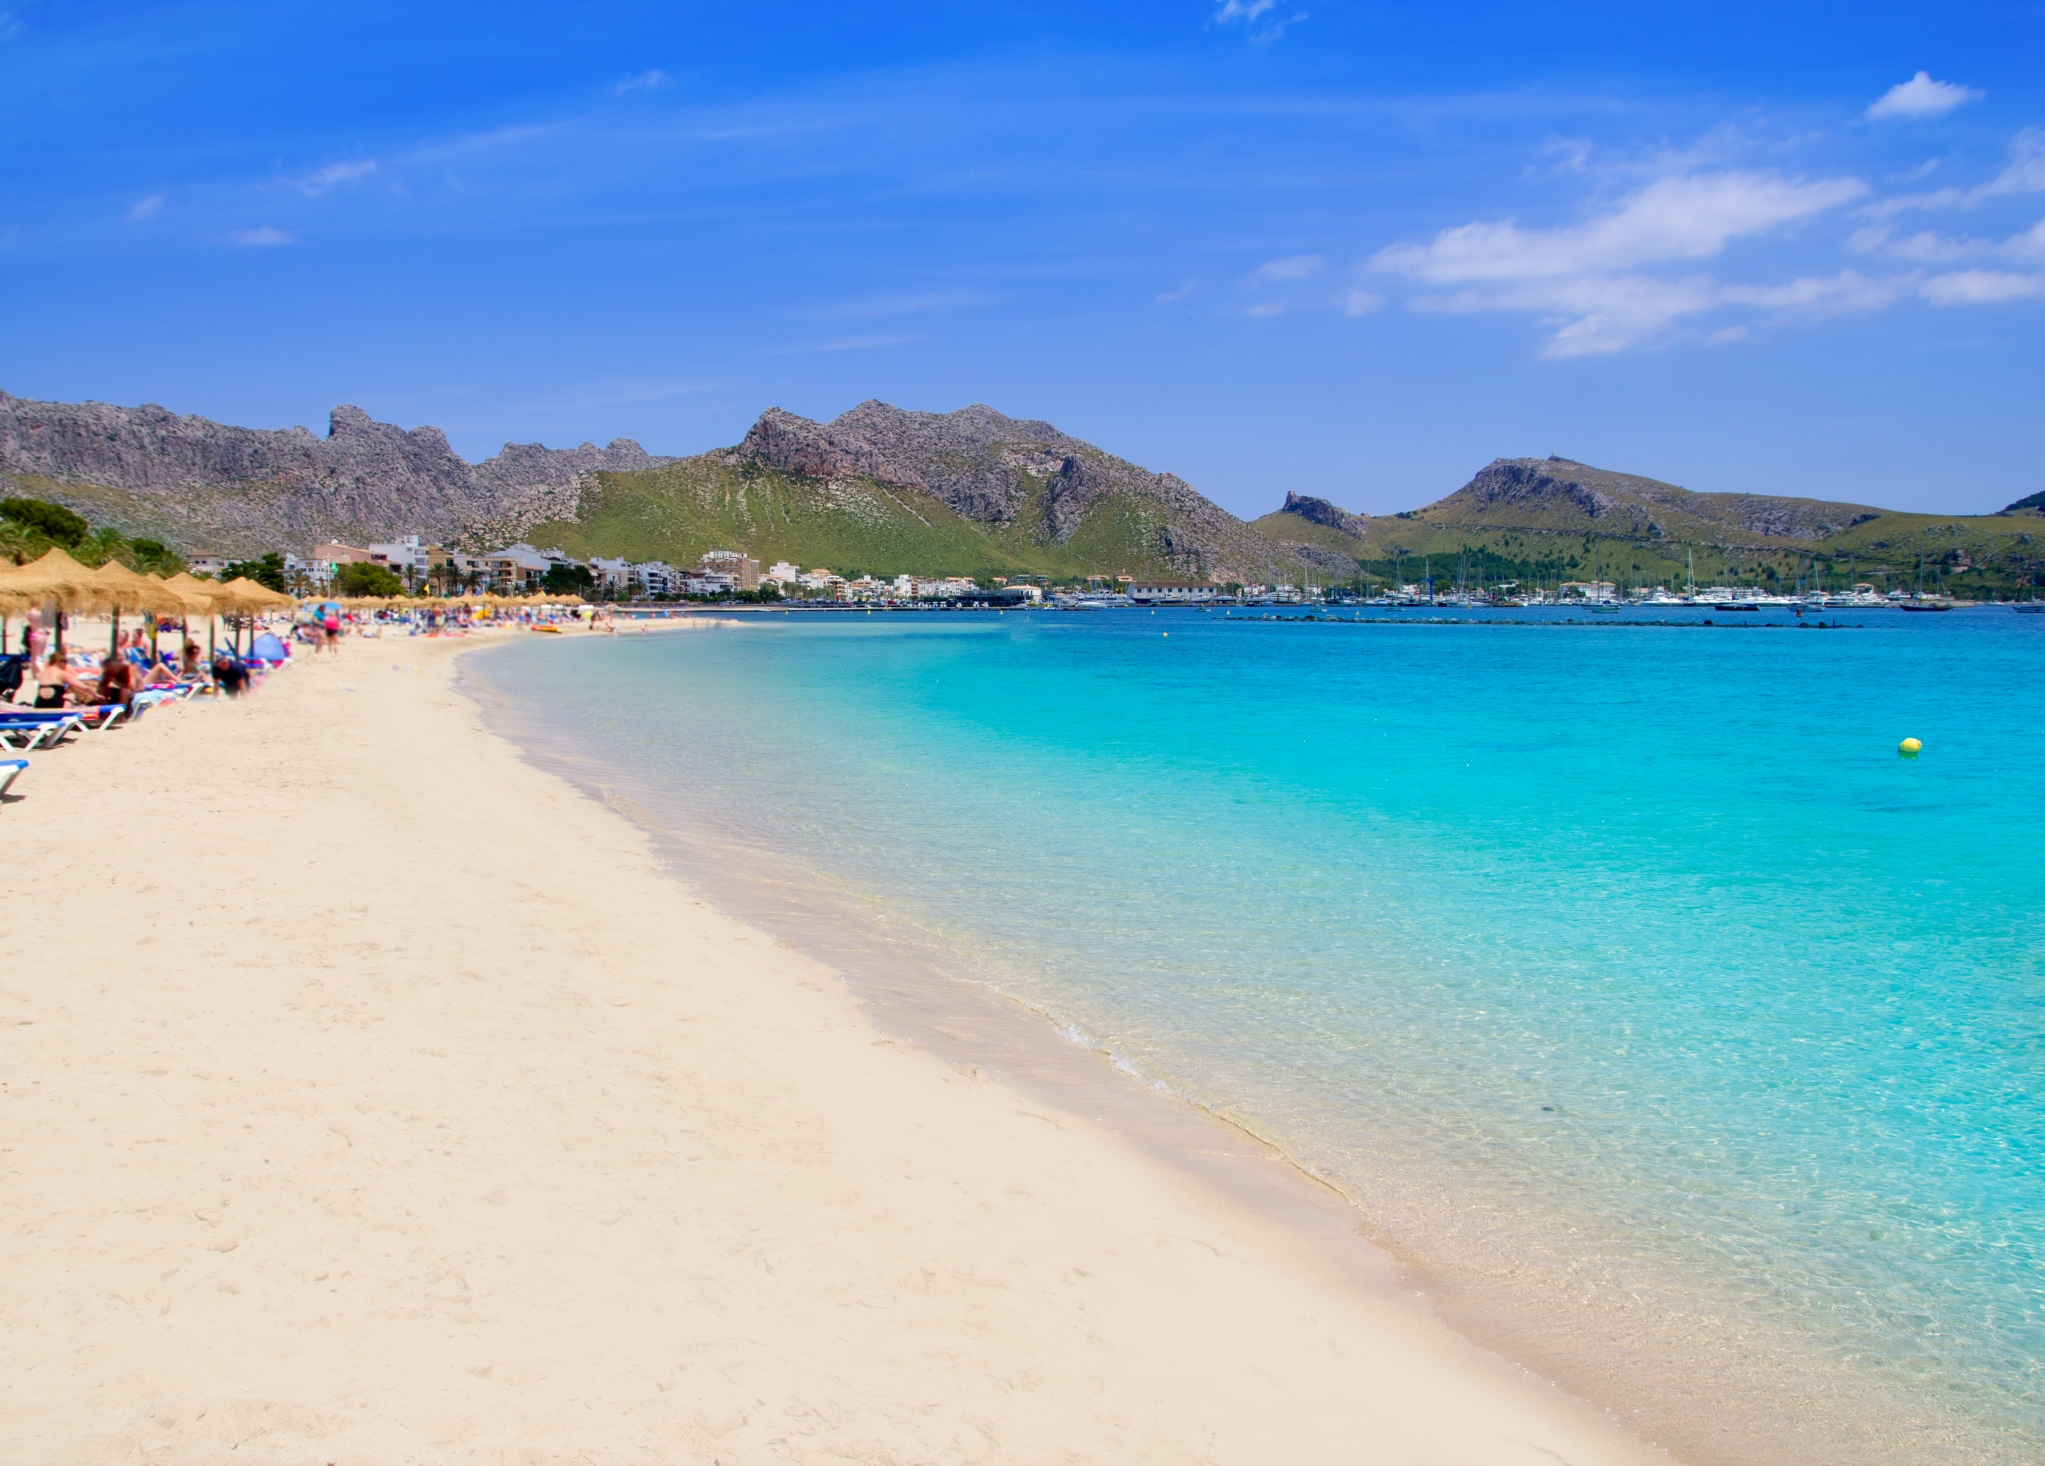 Mallorca Im Herbst 5 Tage Im 4 Hotel Mit All Inclusive